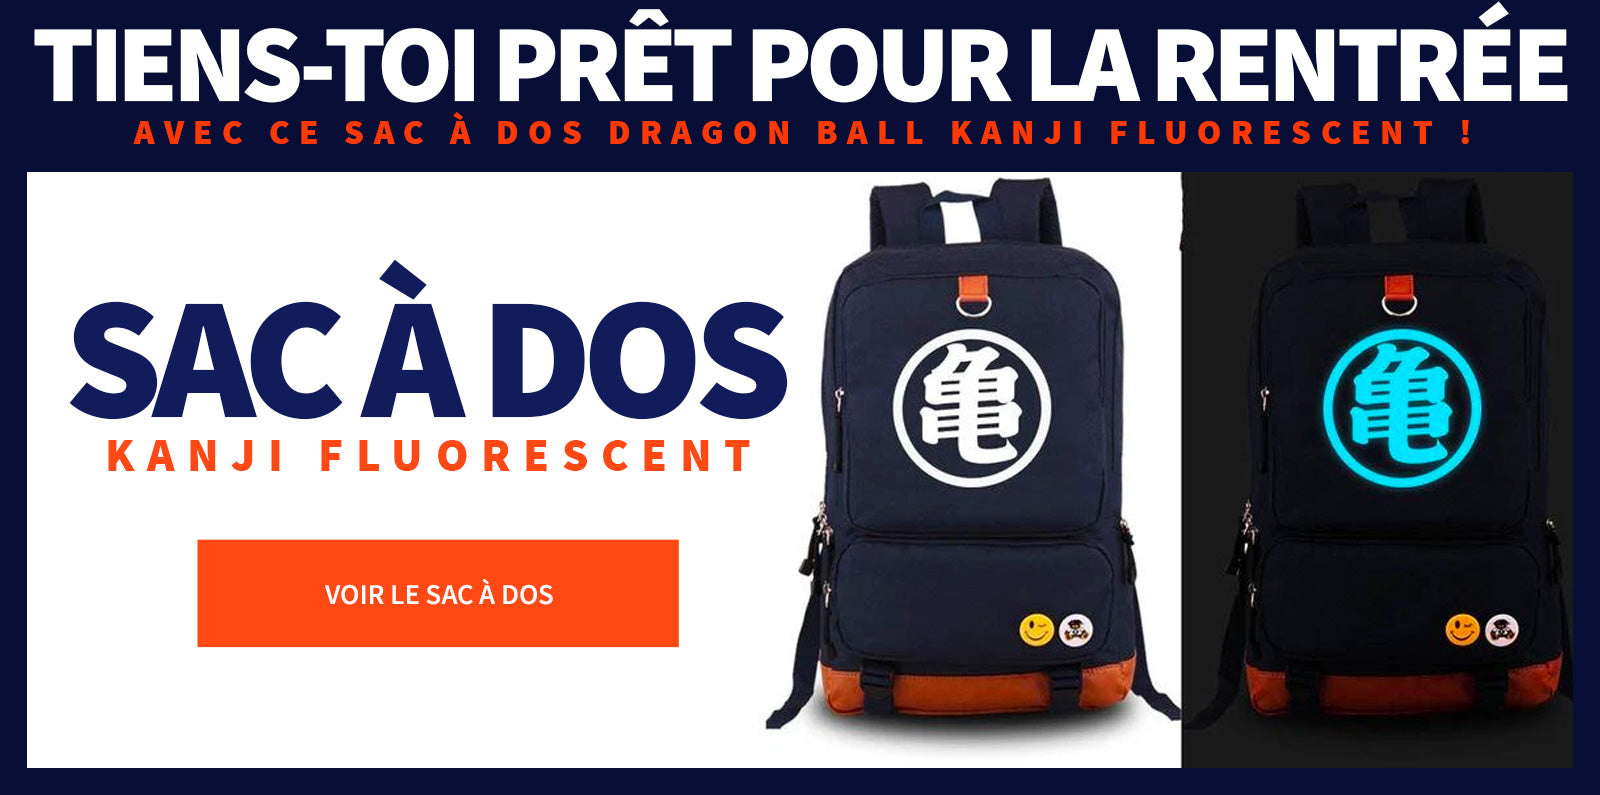 Kanji Dragon Ball Z Fluorescent